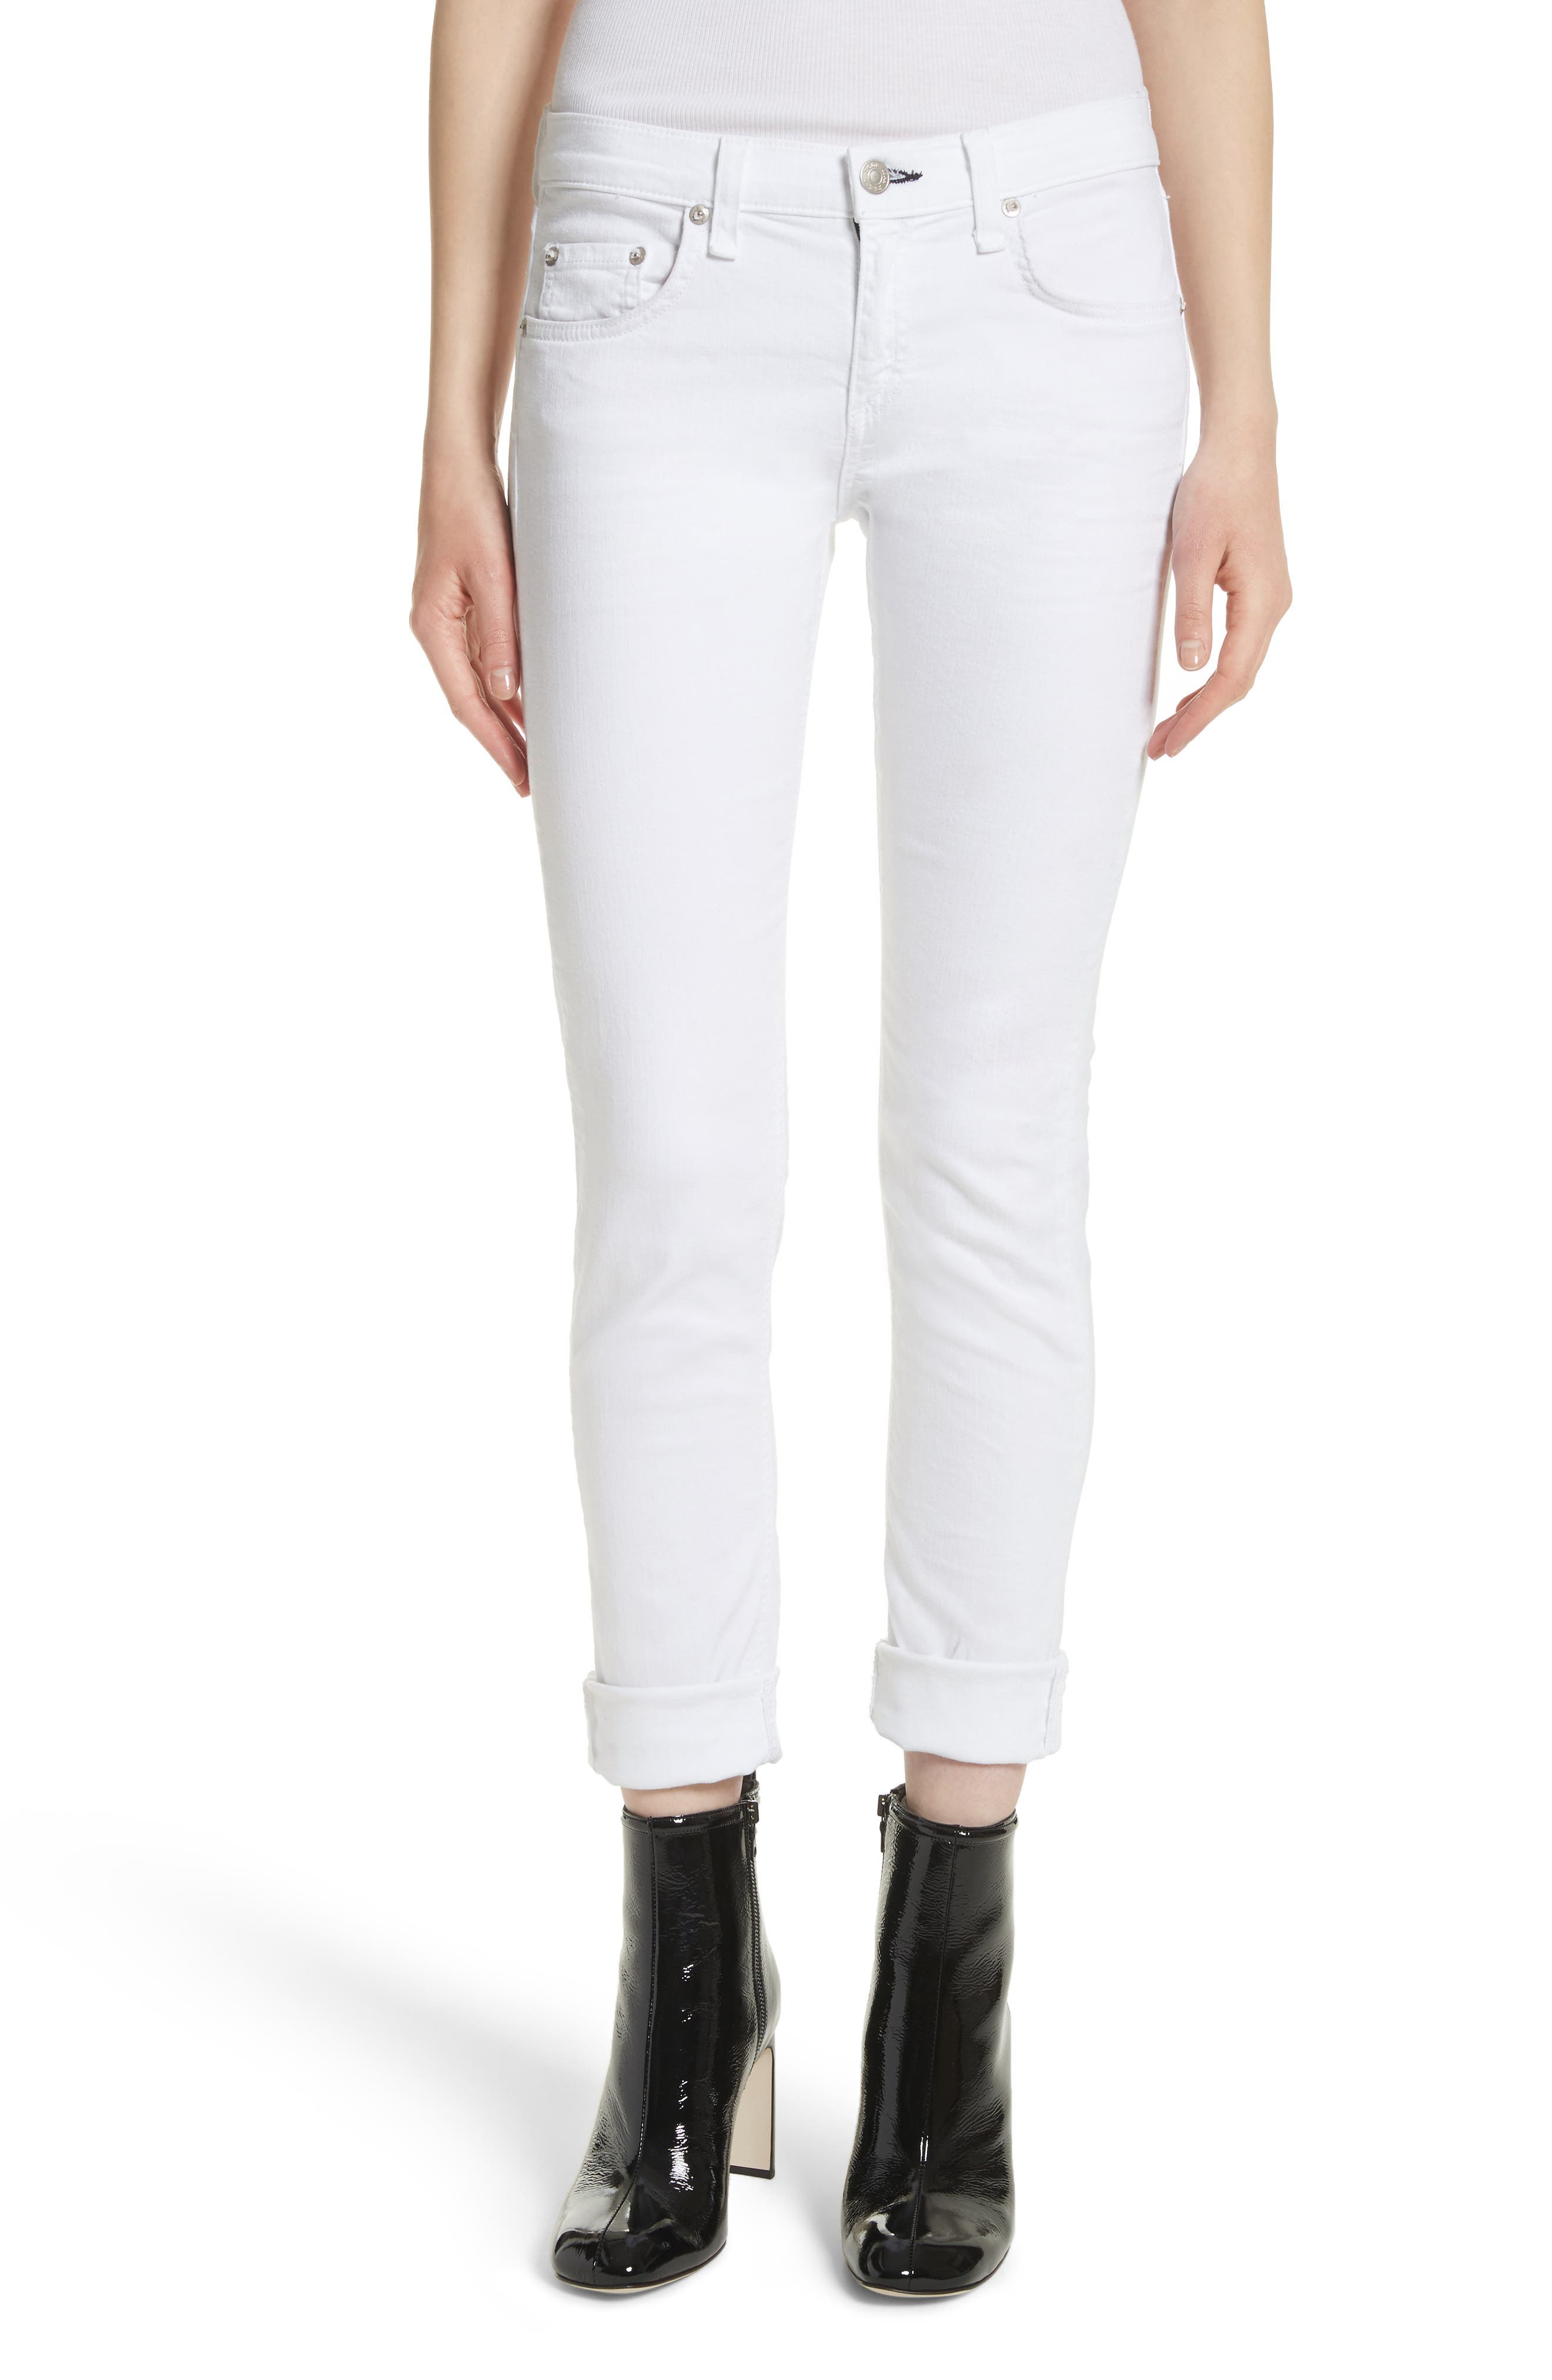 RAG & BONE 'The Dre' Skinny Jeans, Main, color, BRIGHT WHITE